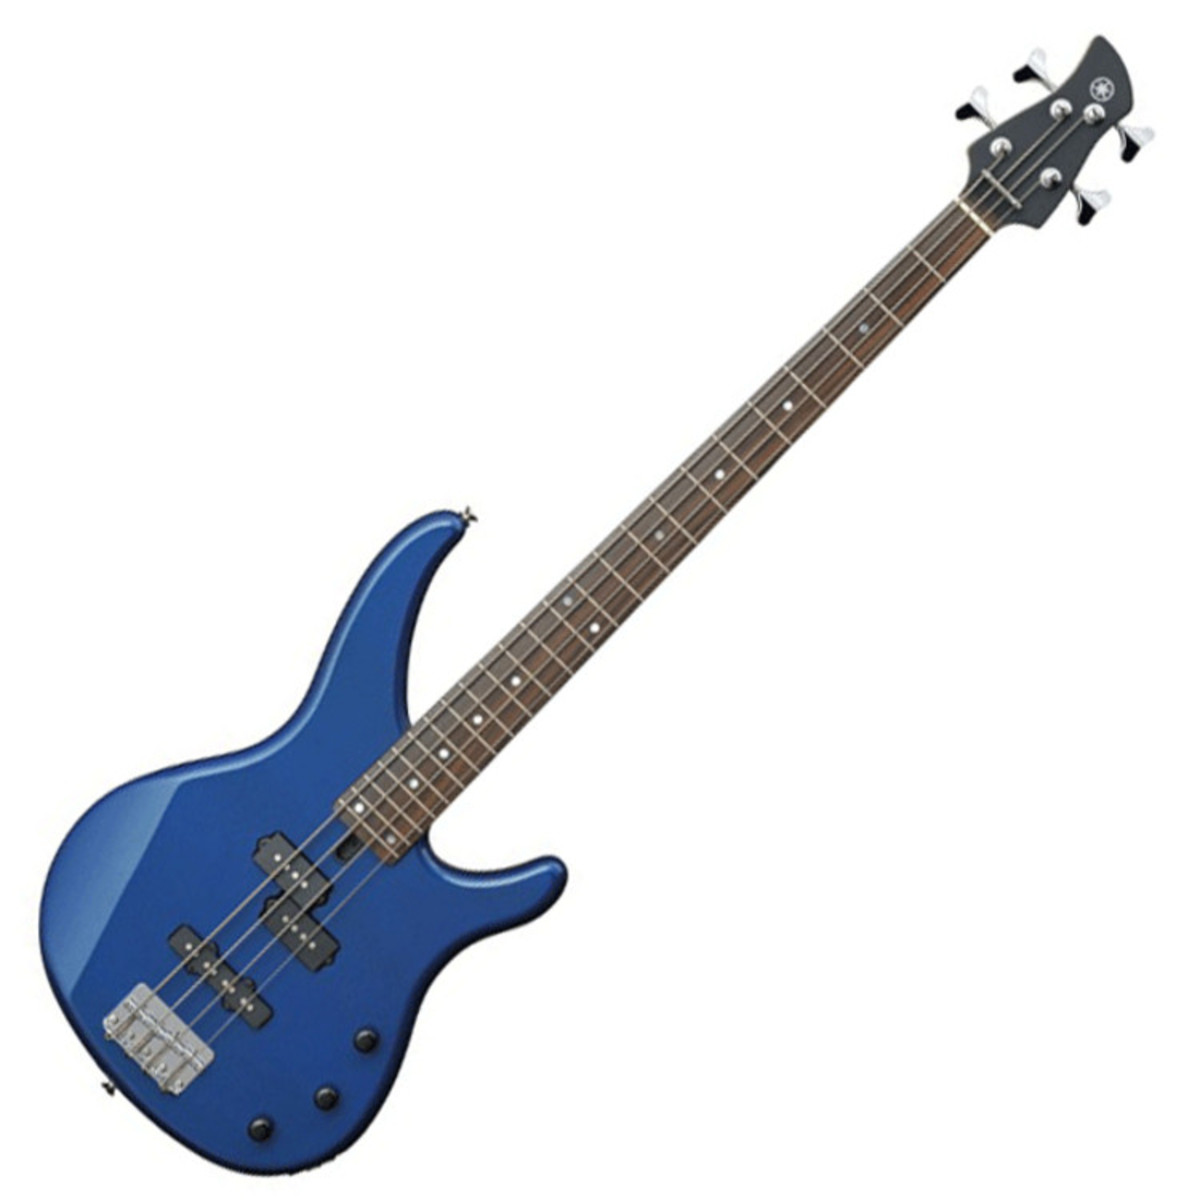 Yamaha trbx174 dark metallic blue hos for Yamaha hs5 no bass